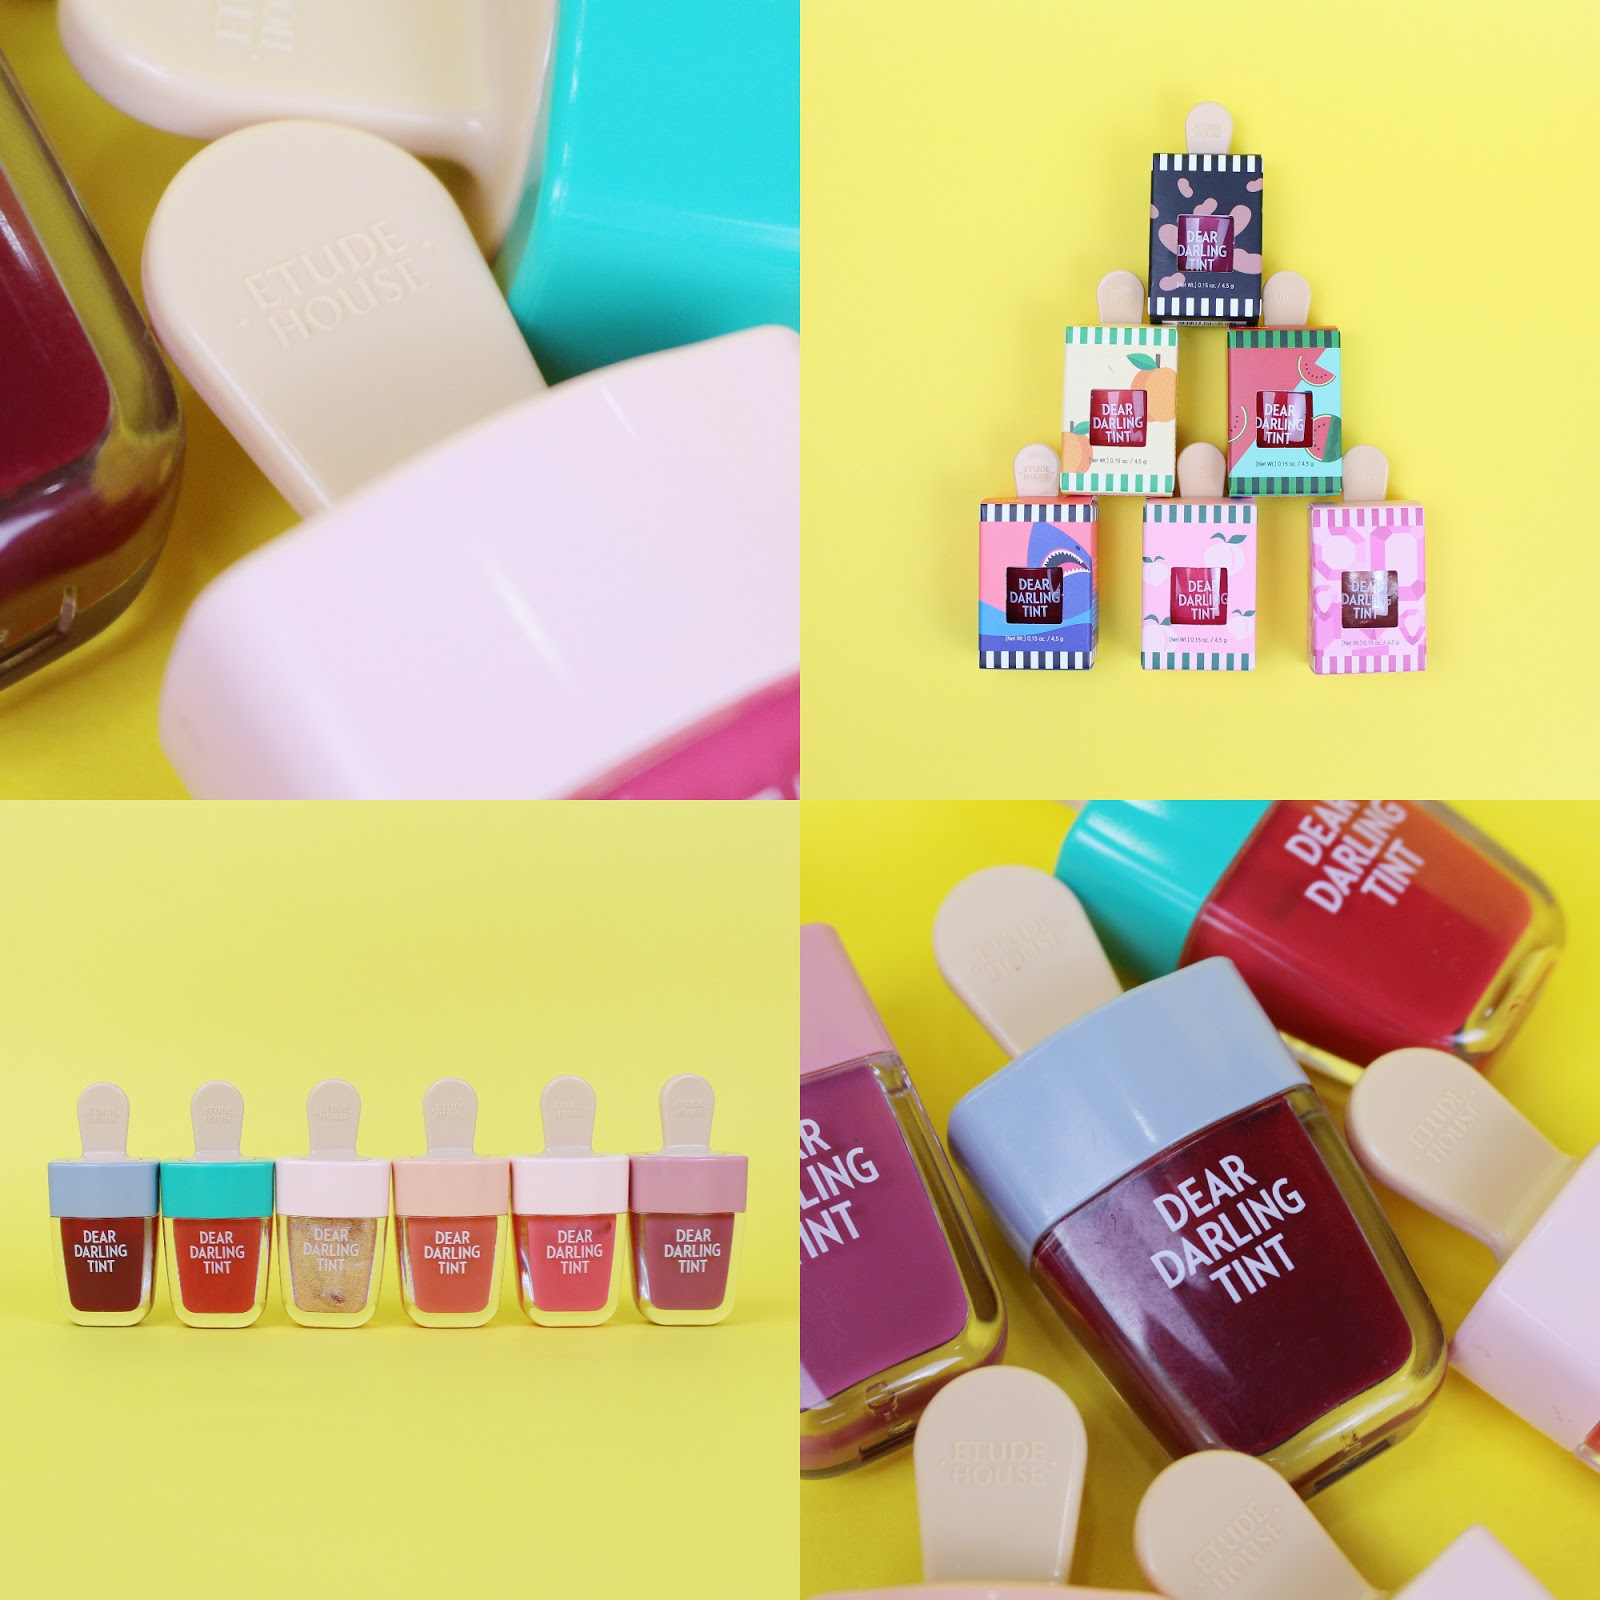 Etude House Dear Darling Water Gel Tint Ice Cream Edition Full Range First Of All The Packaging Is So Cute With 45g Product Lip Tints Can Be Applied A Small Doe Foot Brush